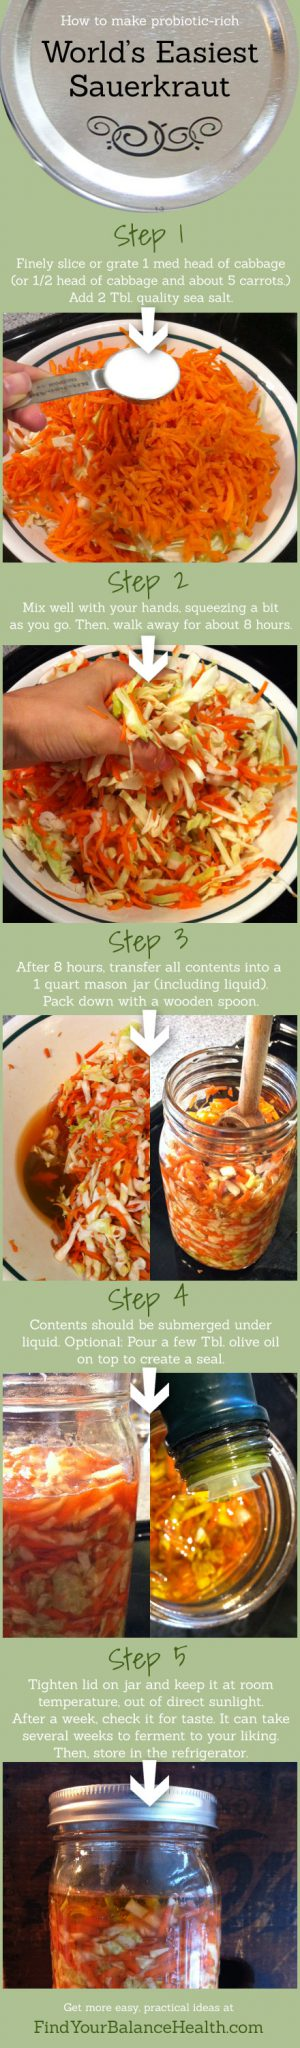 Easy Sauerkraut Recipe